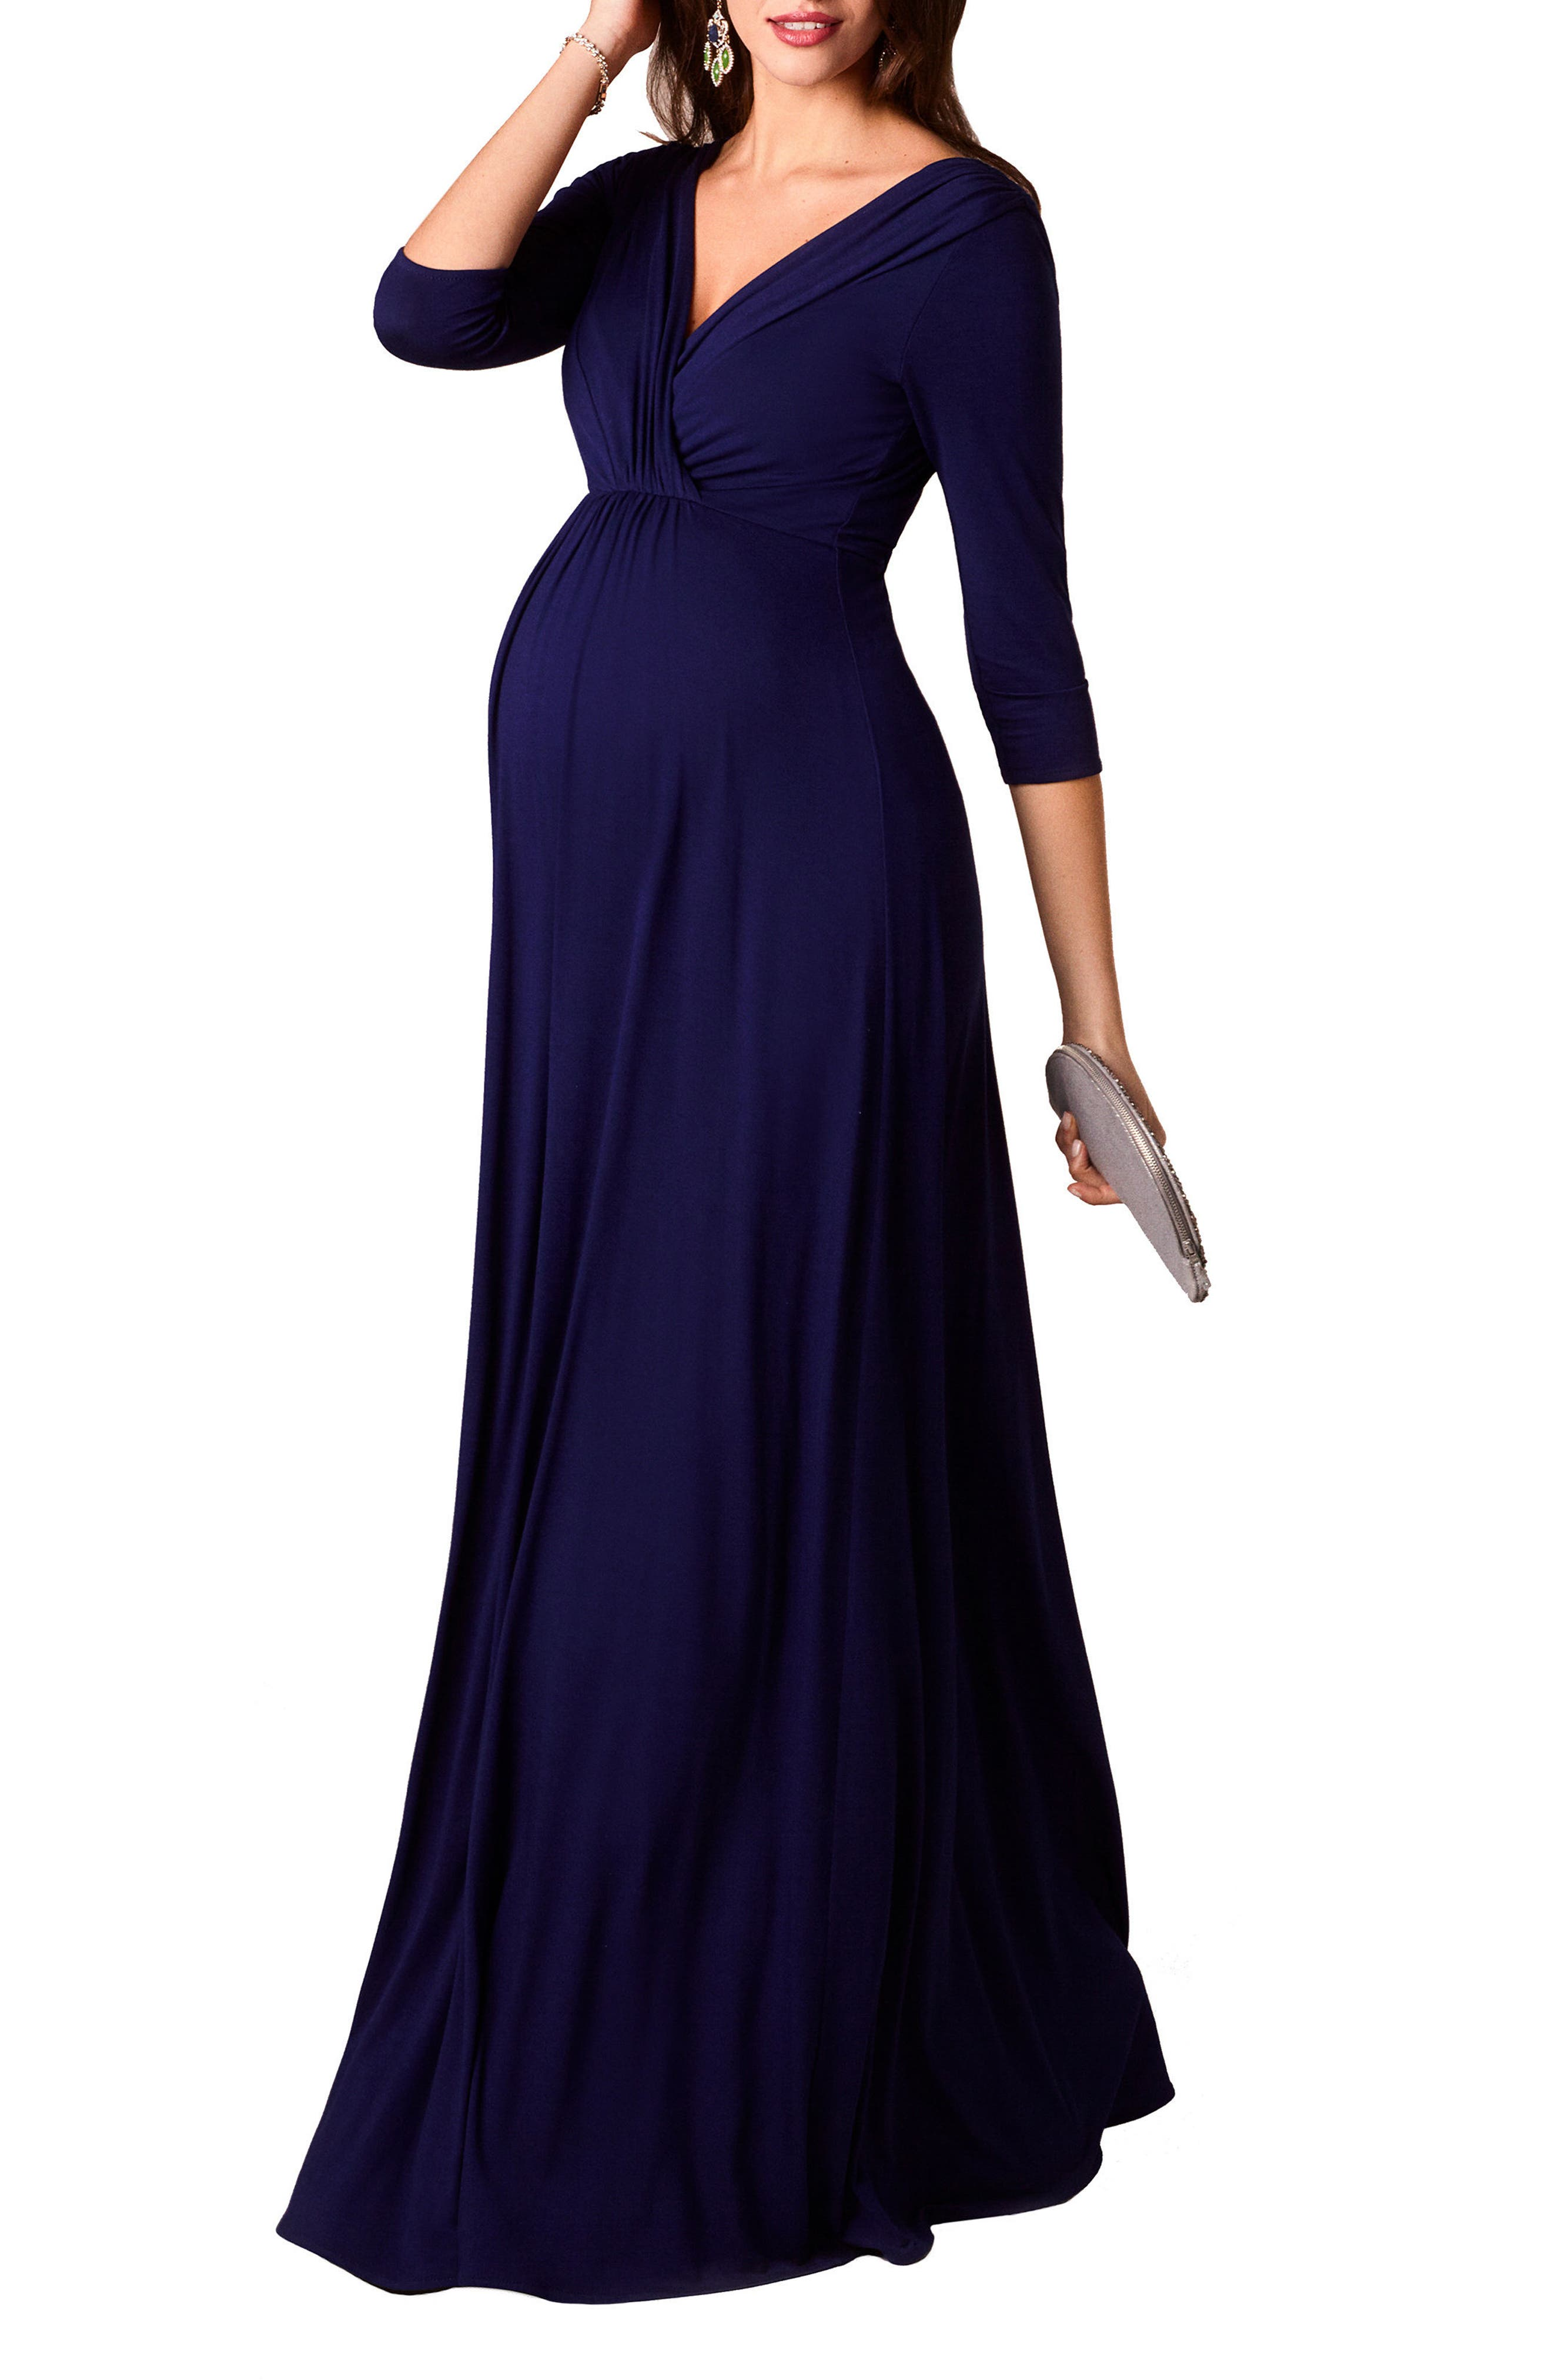 Willow Maternity Gown,                         Main,                         color, Eclipse Blue